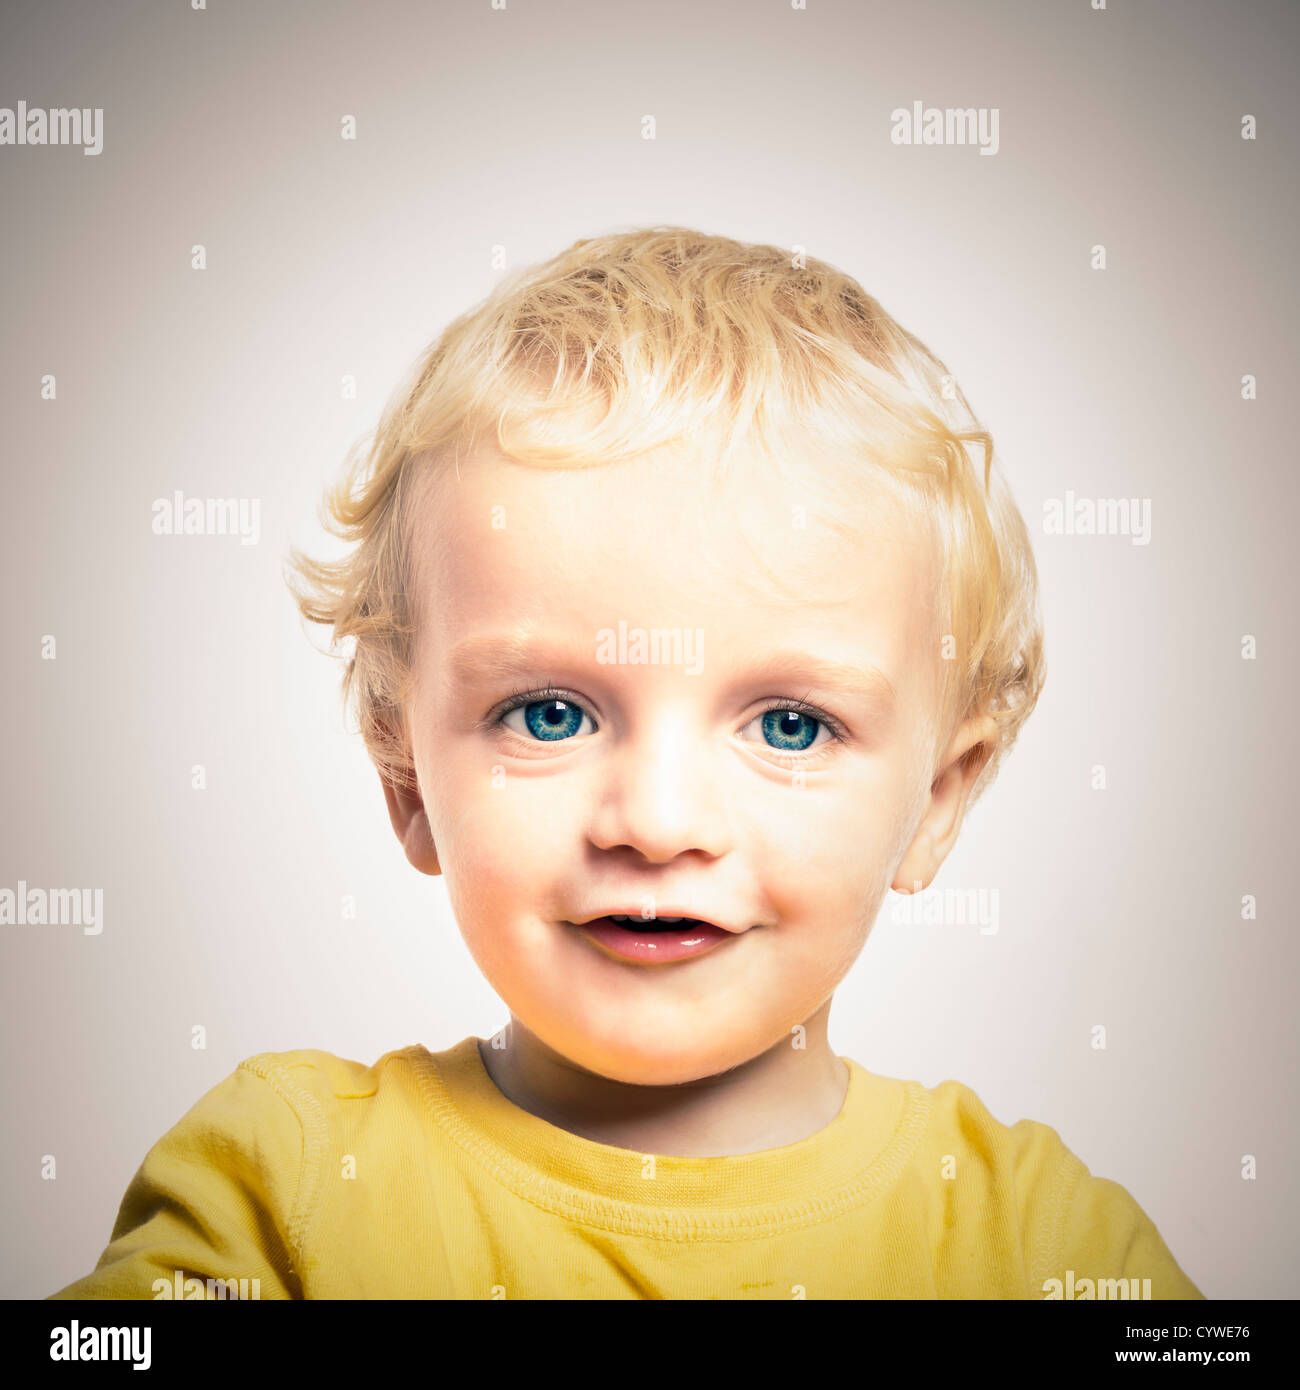 Close up of happy cute adorable child boy. - Stock Image